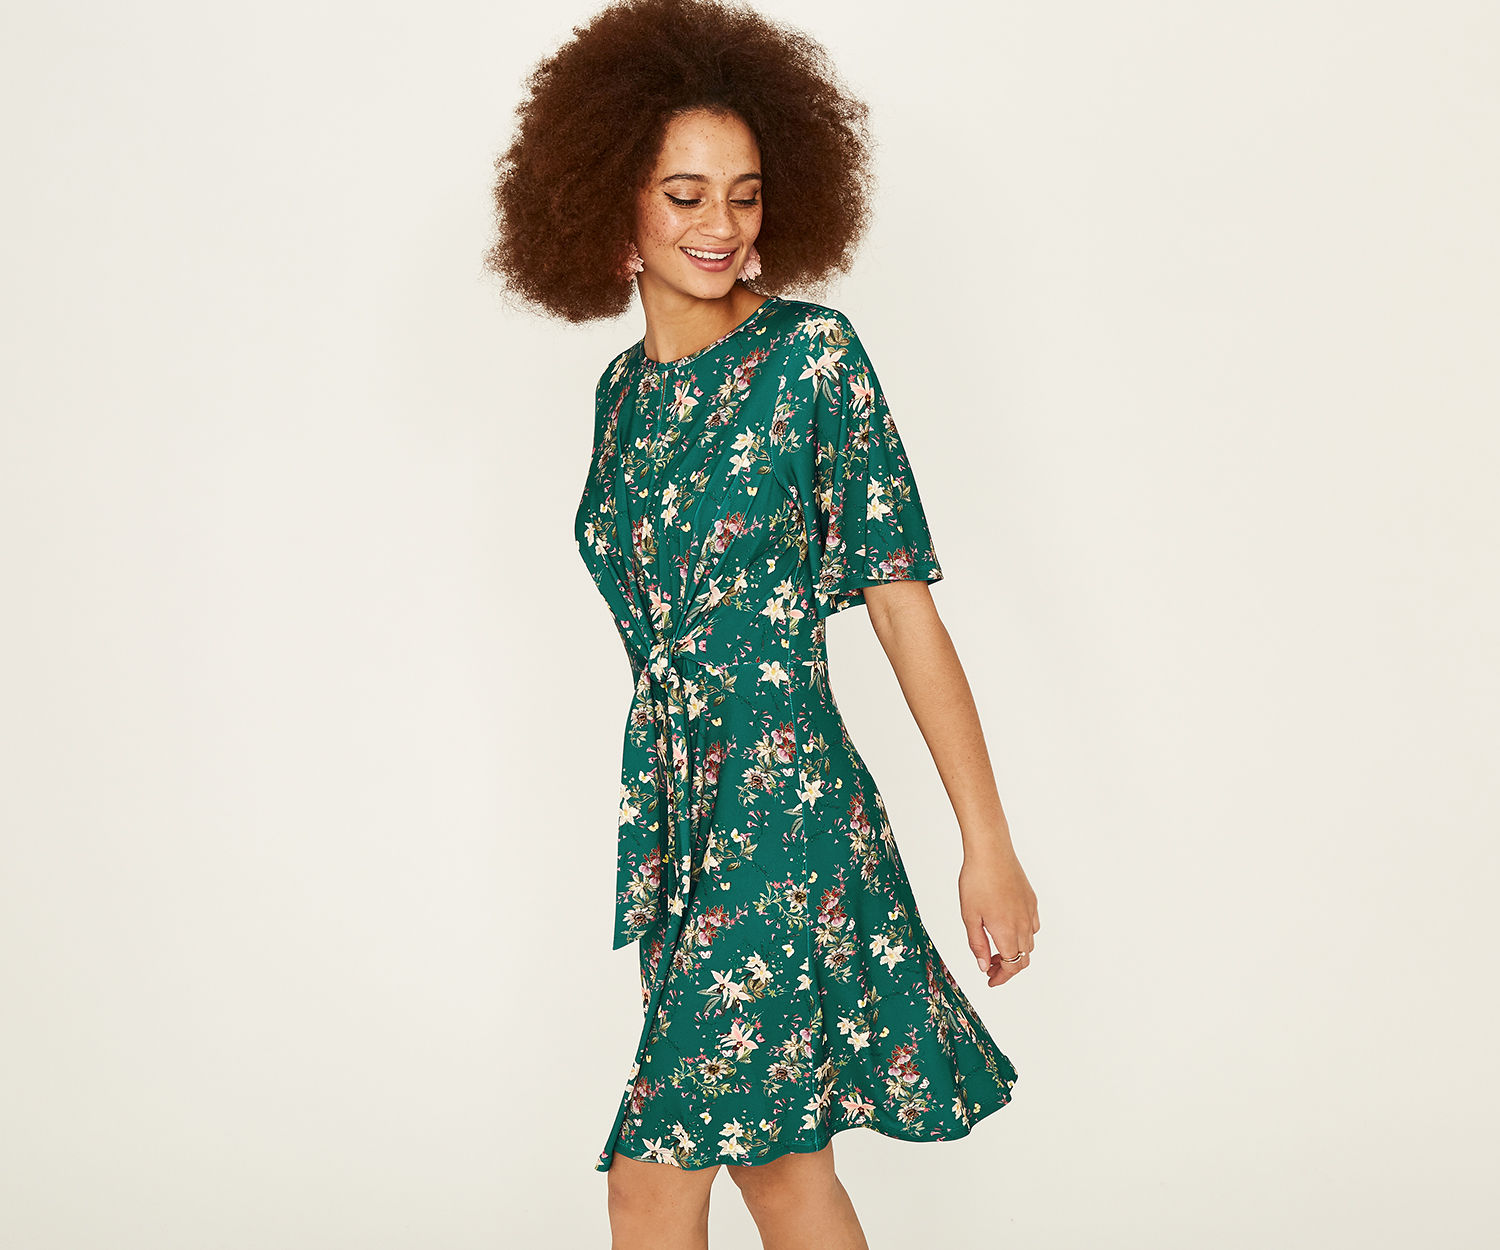 Oasis Multi Green Kelsey Tie Front Dress - UK style blog